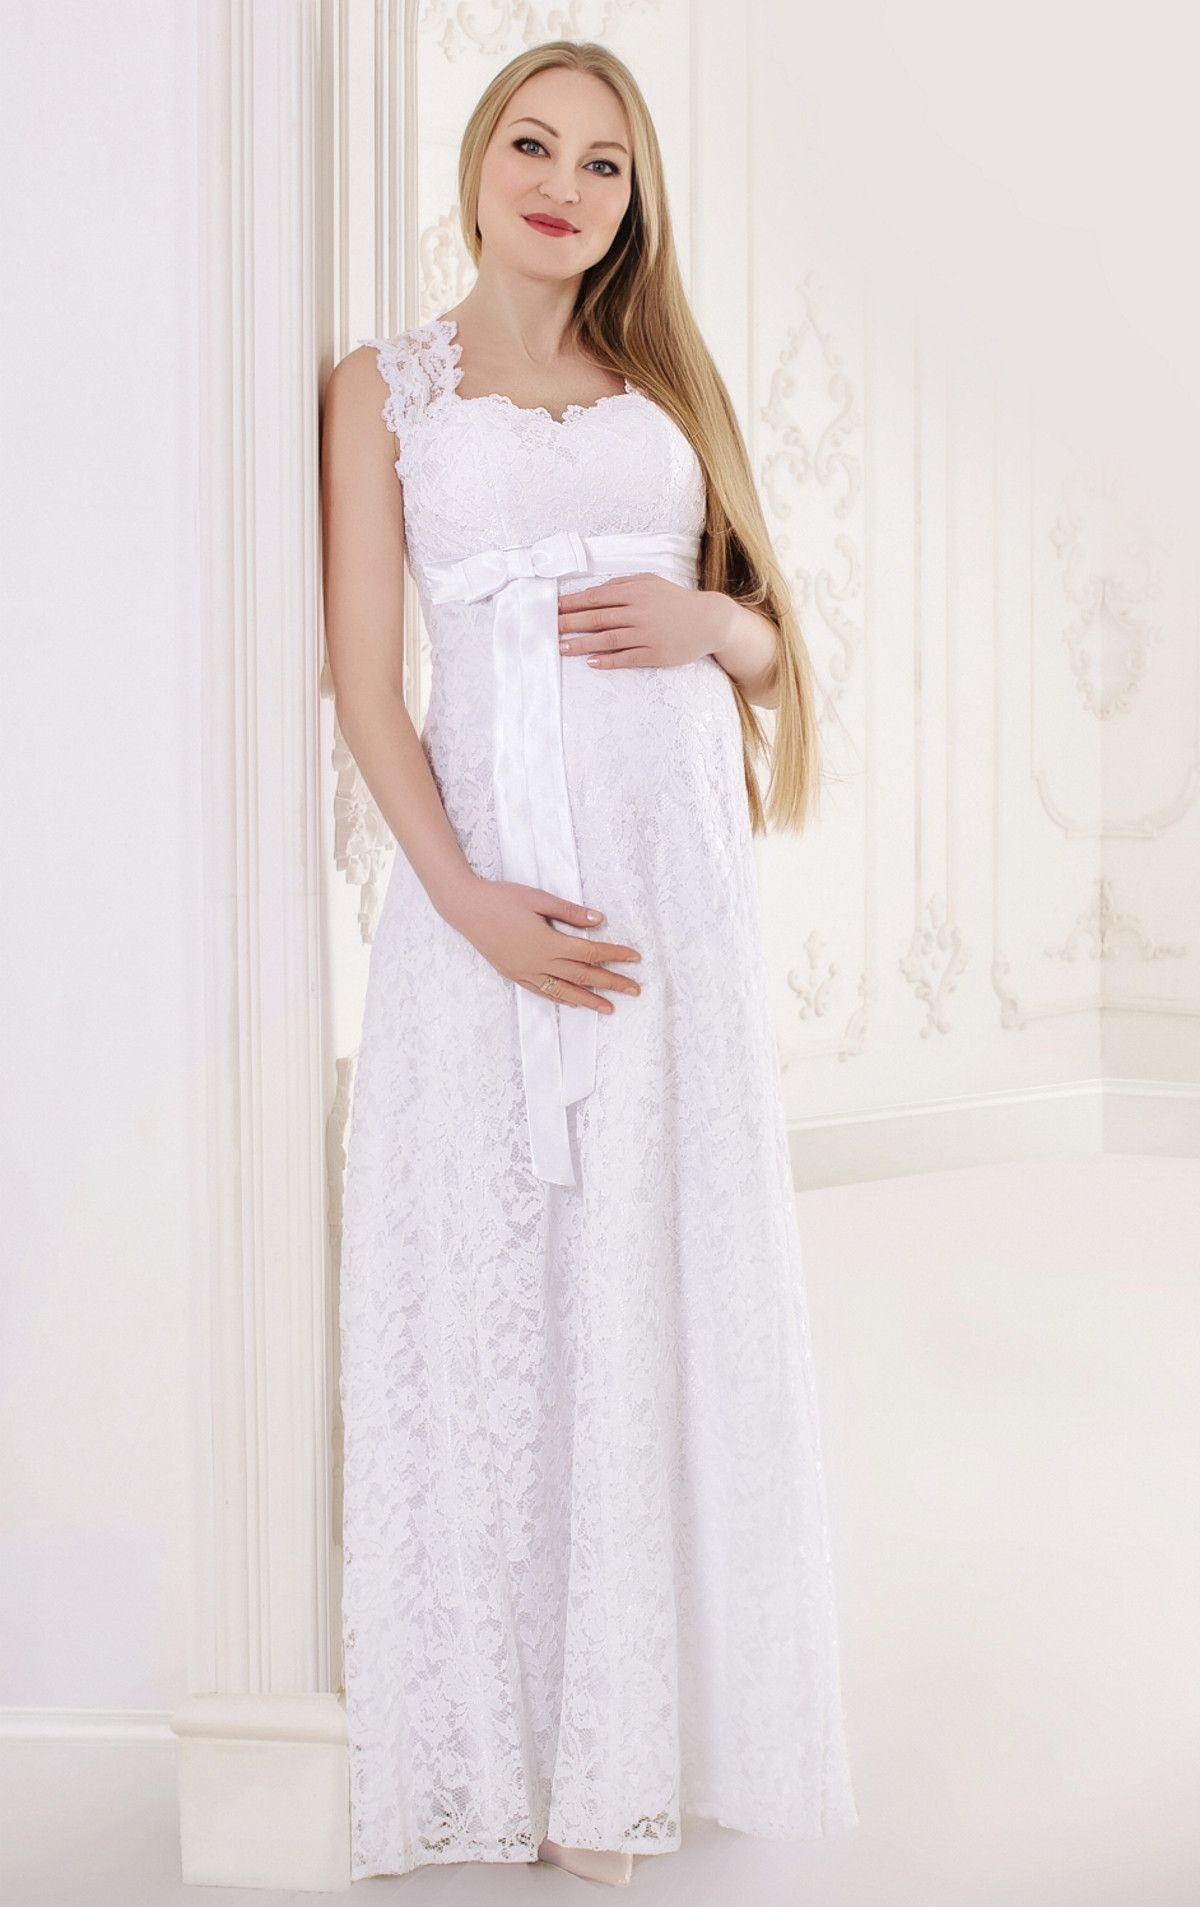 Long Lace Wedding Dress for mother-to-be a bride Fabric: lace ...